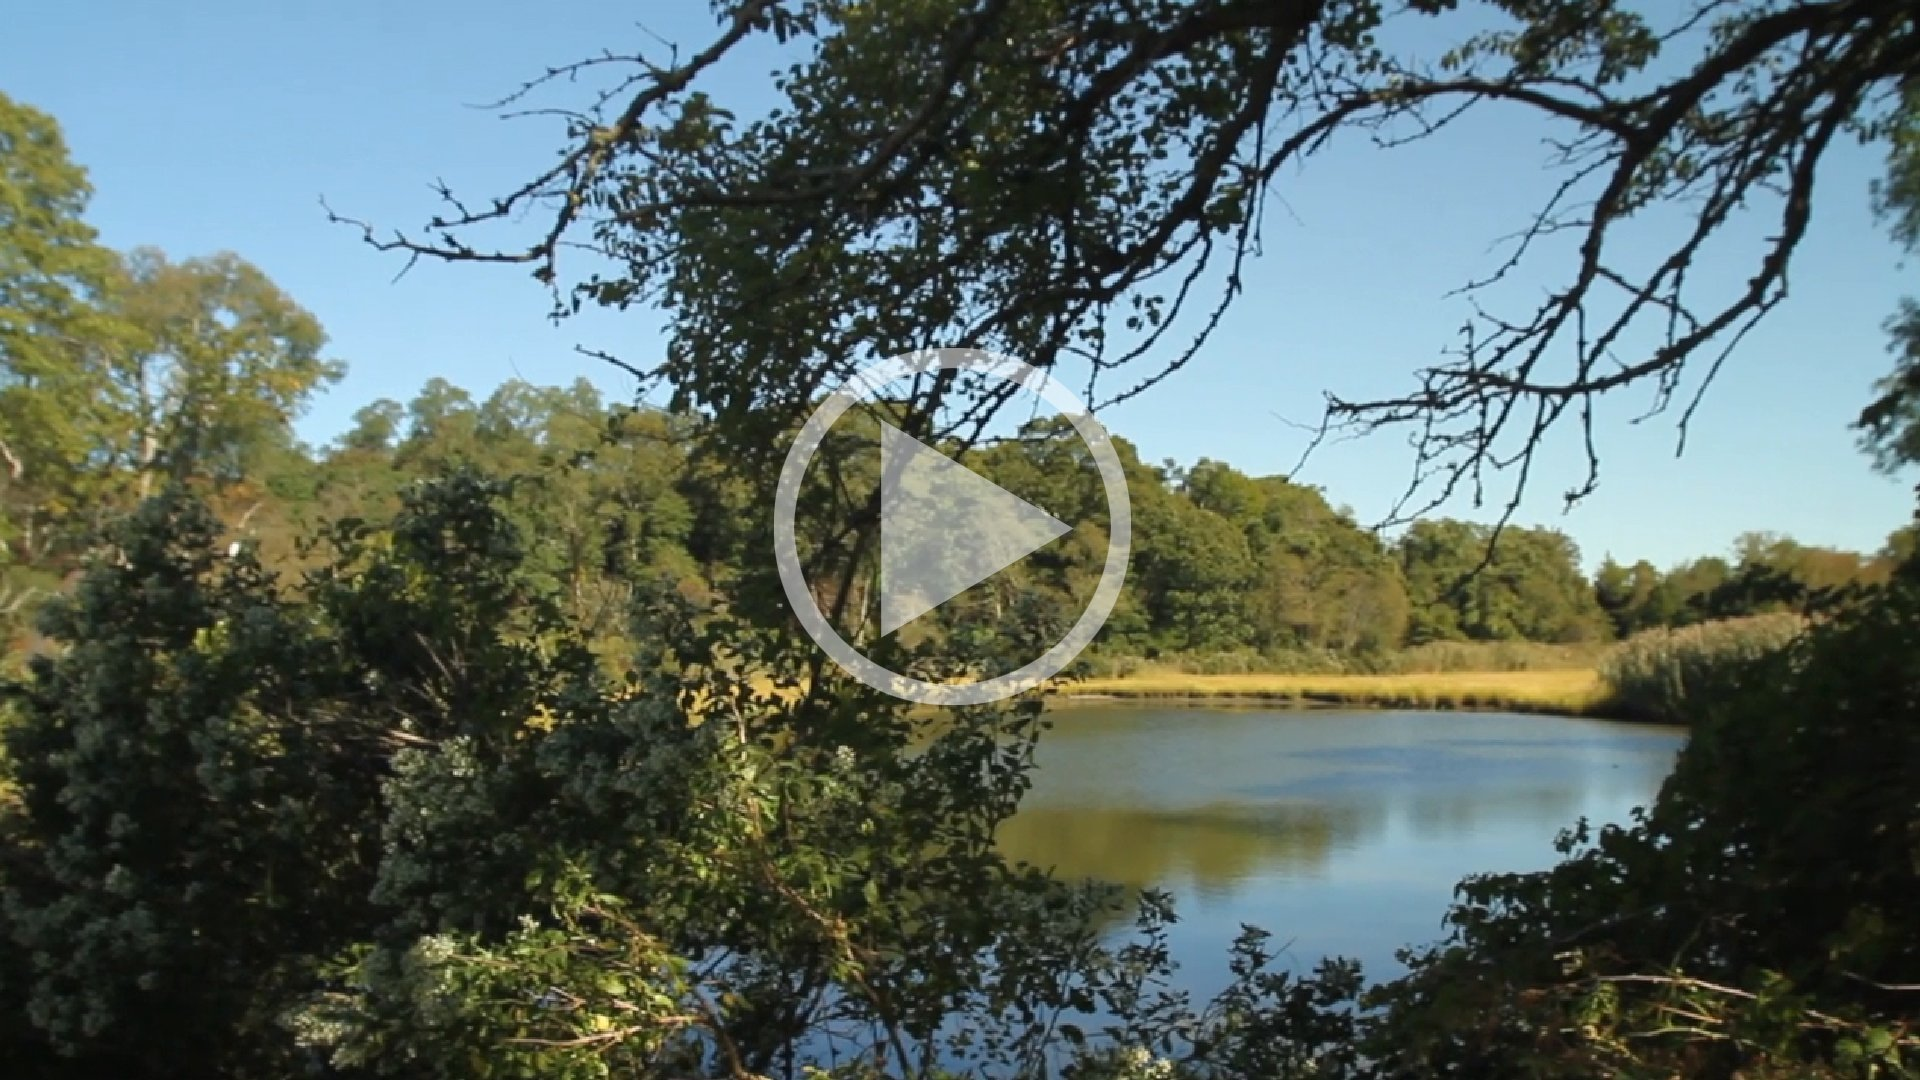 EXPLORE SHELTER ISLAND HEIGHTS